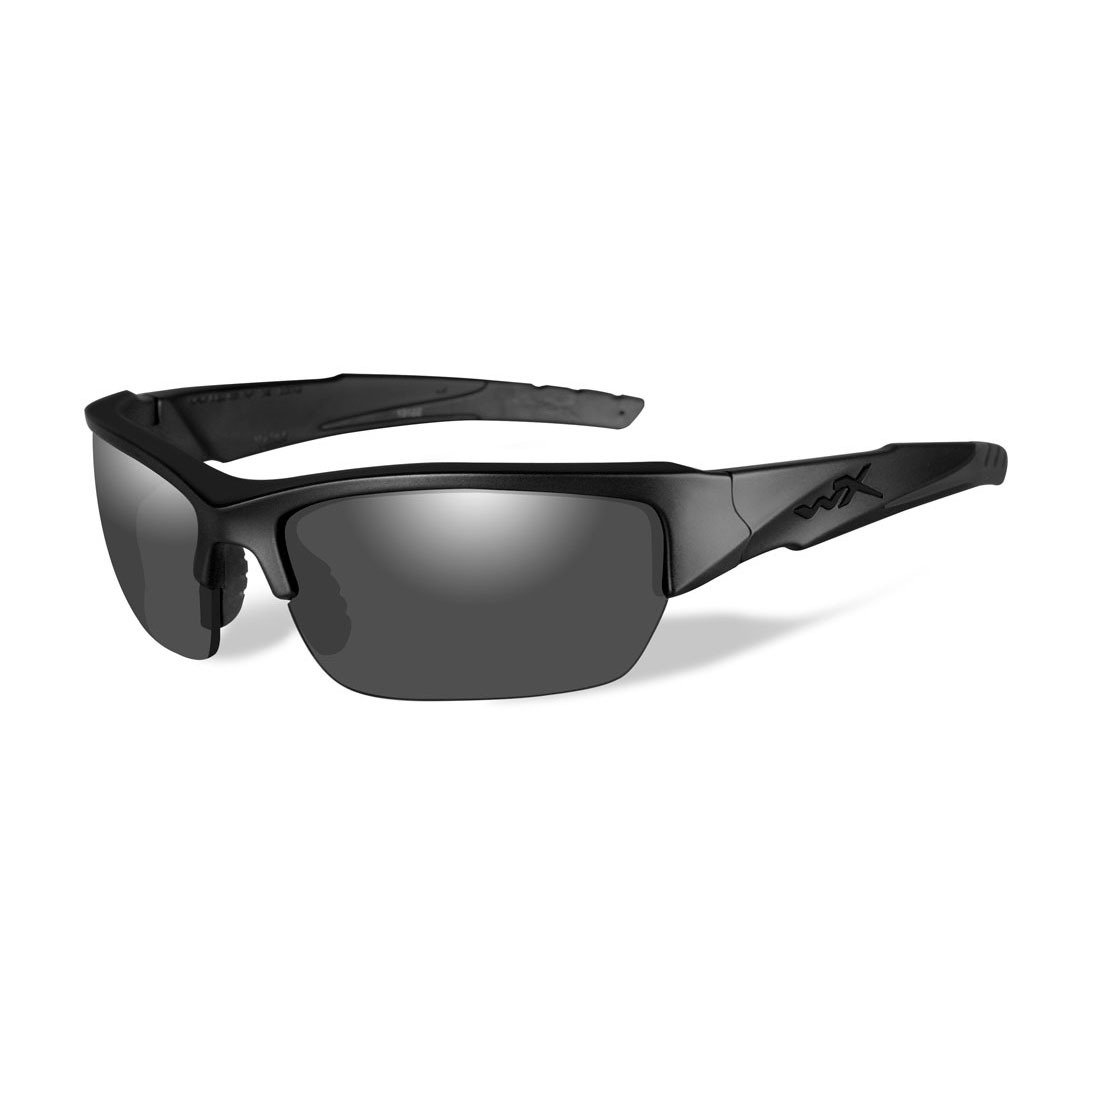 Wiley X Valor Black Ops Sunglasses